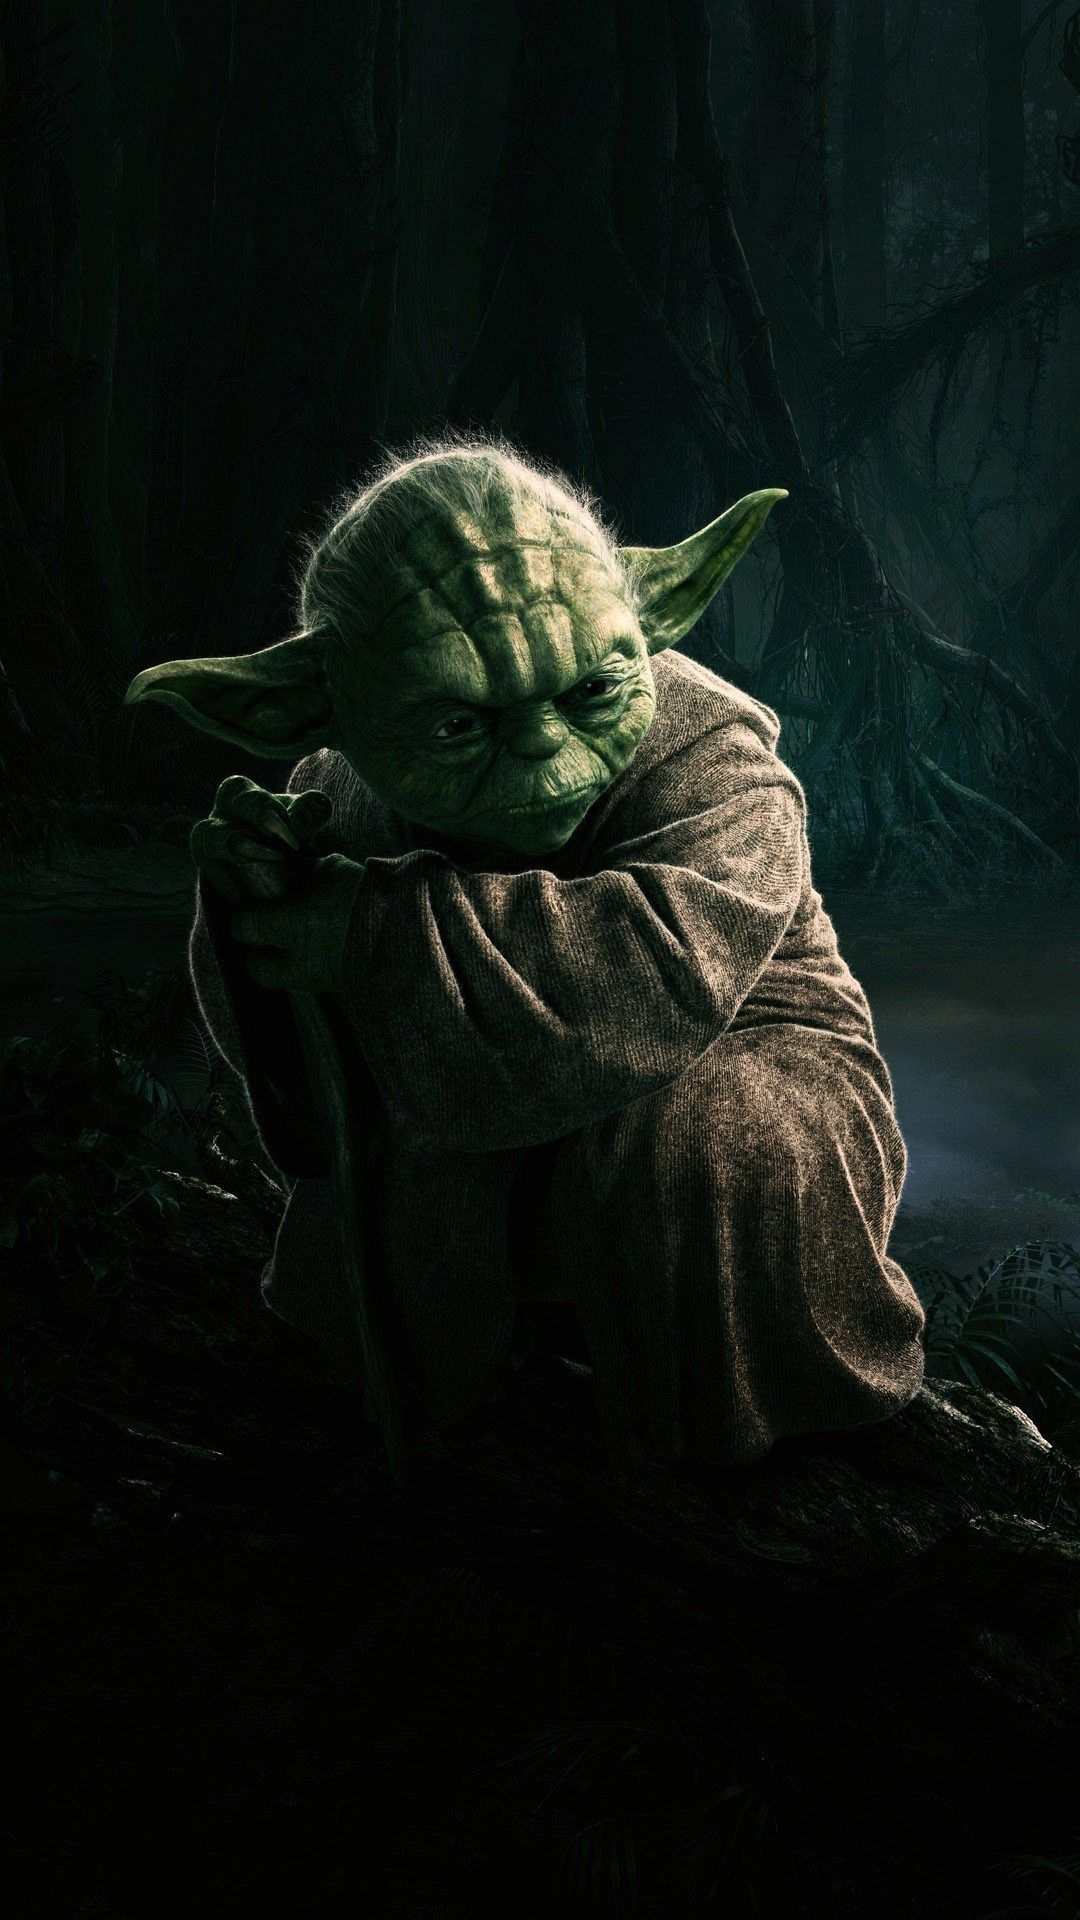 Cool 4k Ultra Hd Baby Yoda Hd Wallpaper pictures in 2020